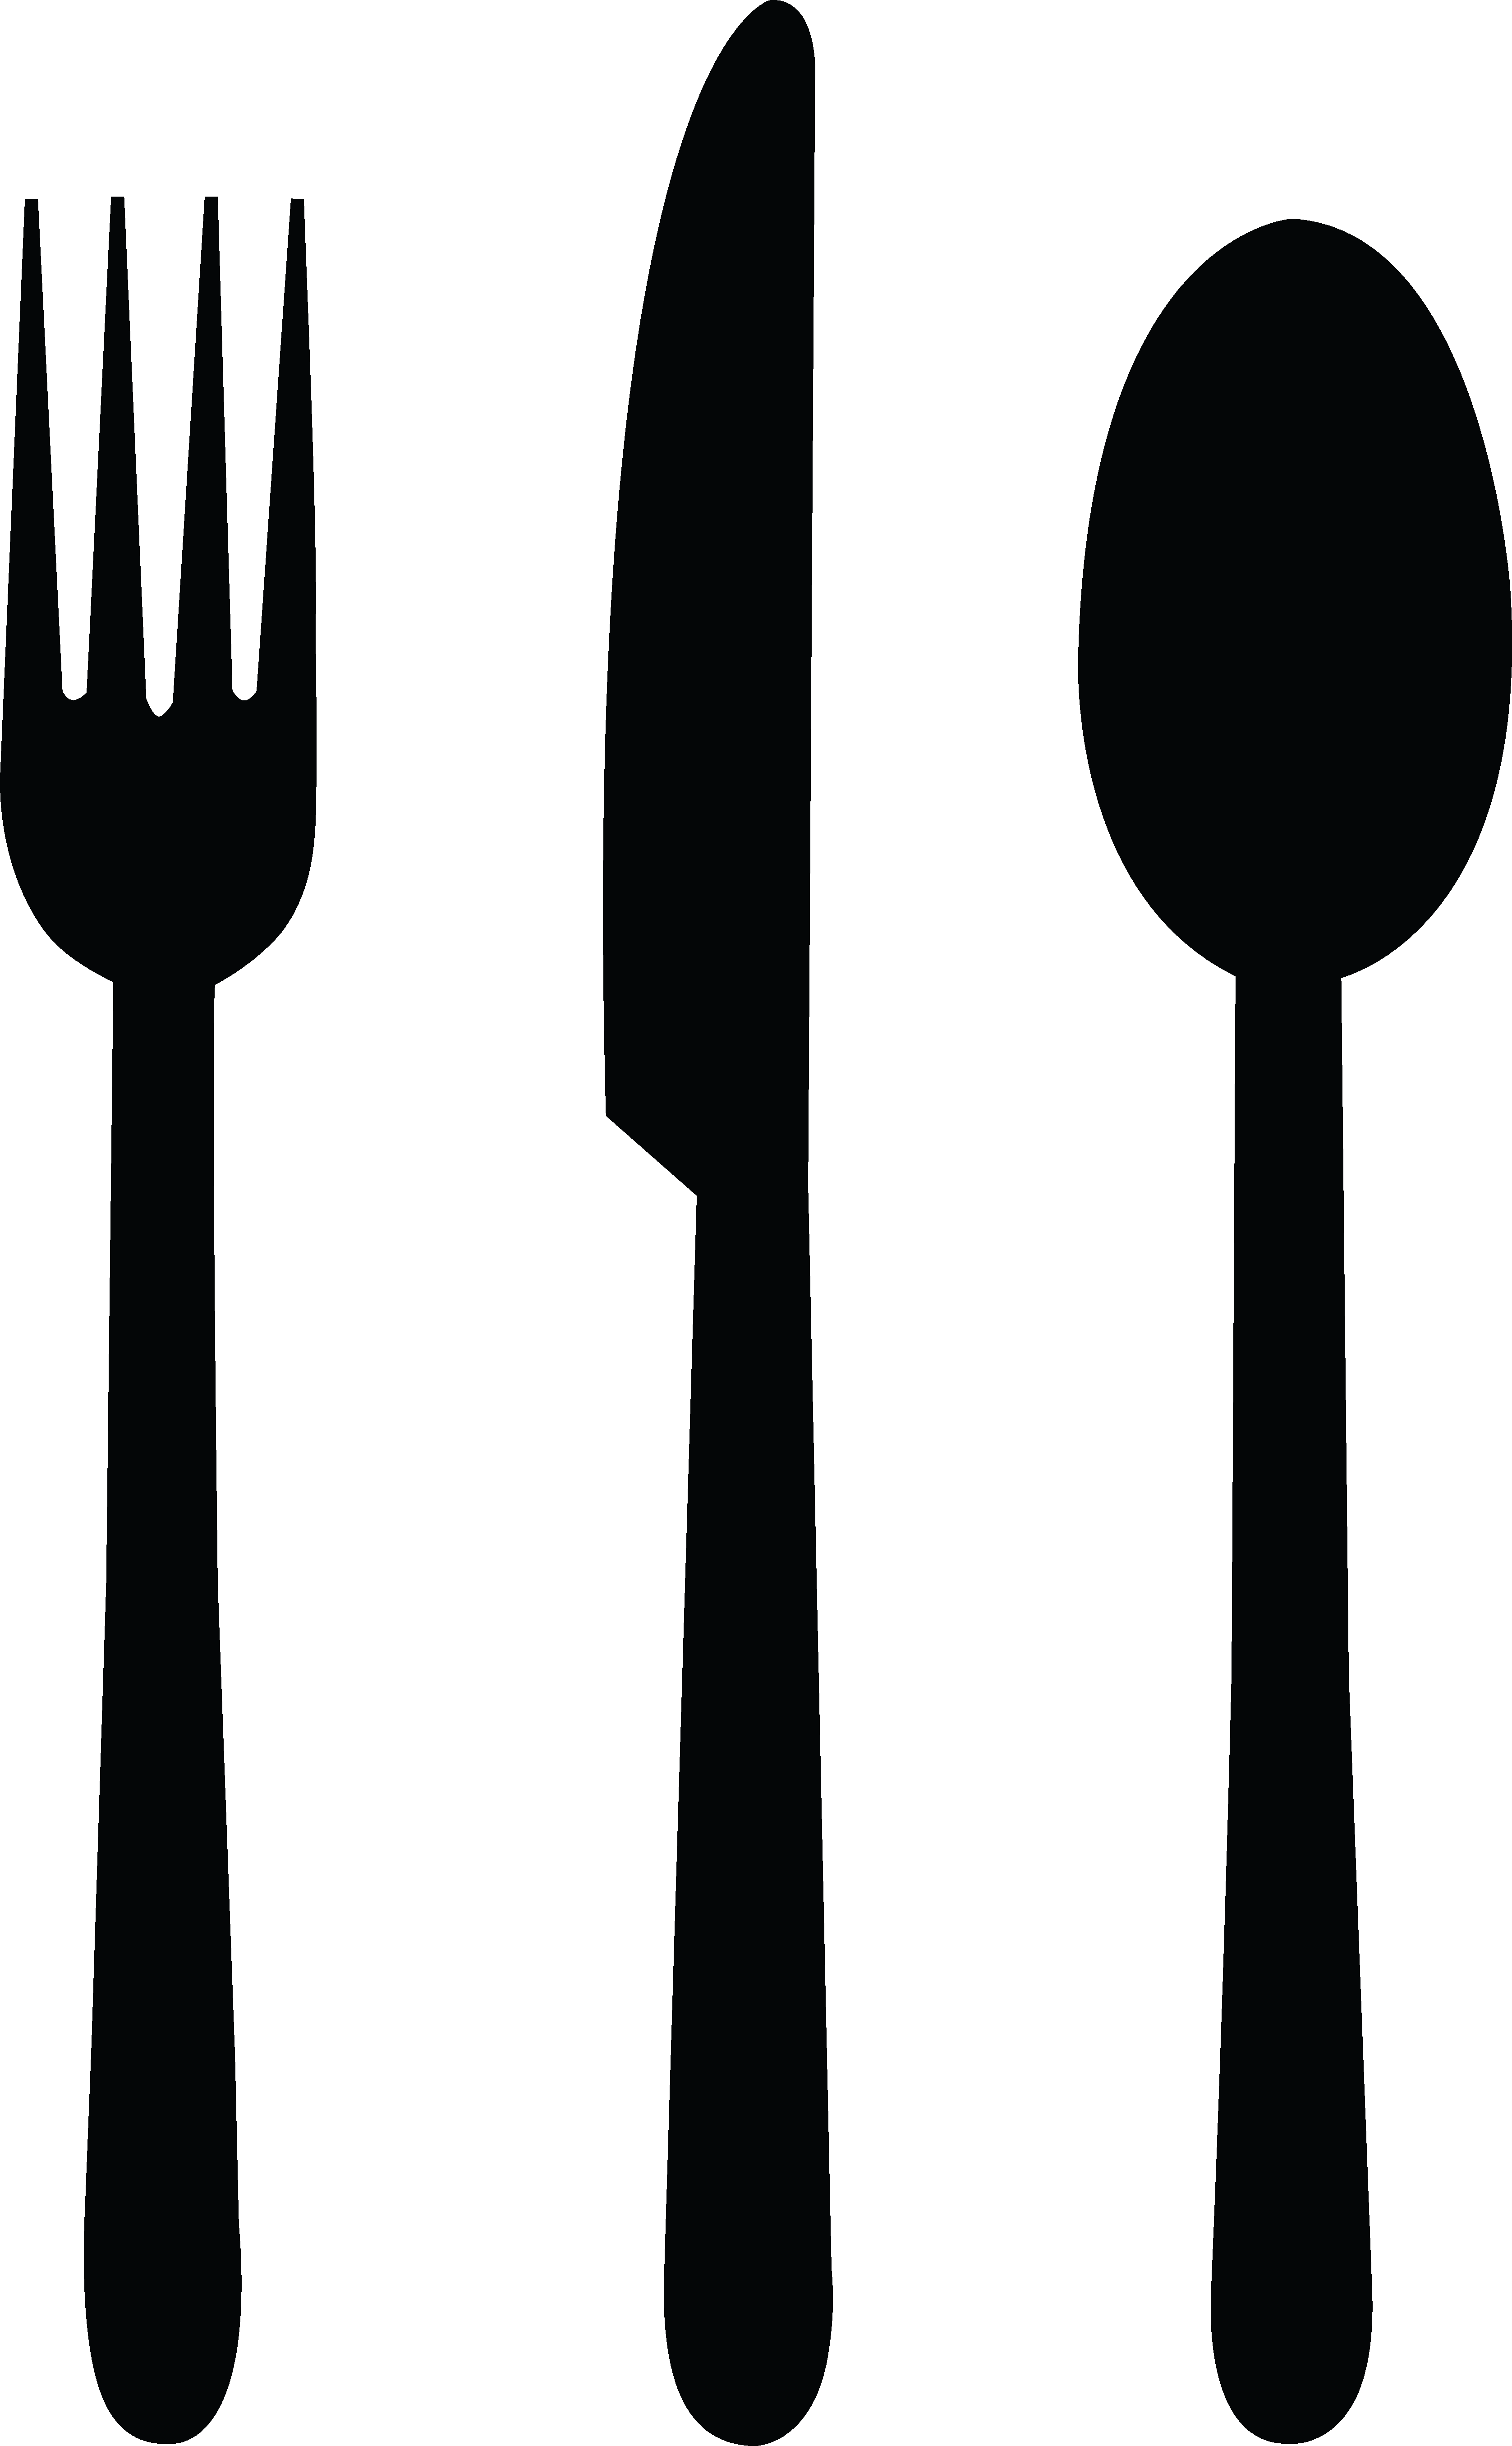 Dishes clipart thali. Fork and knife transparent